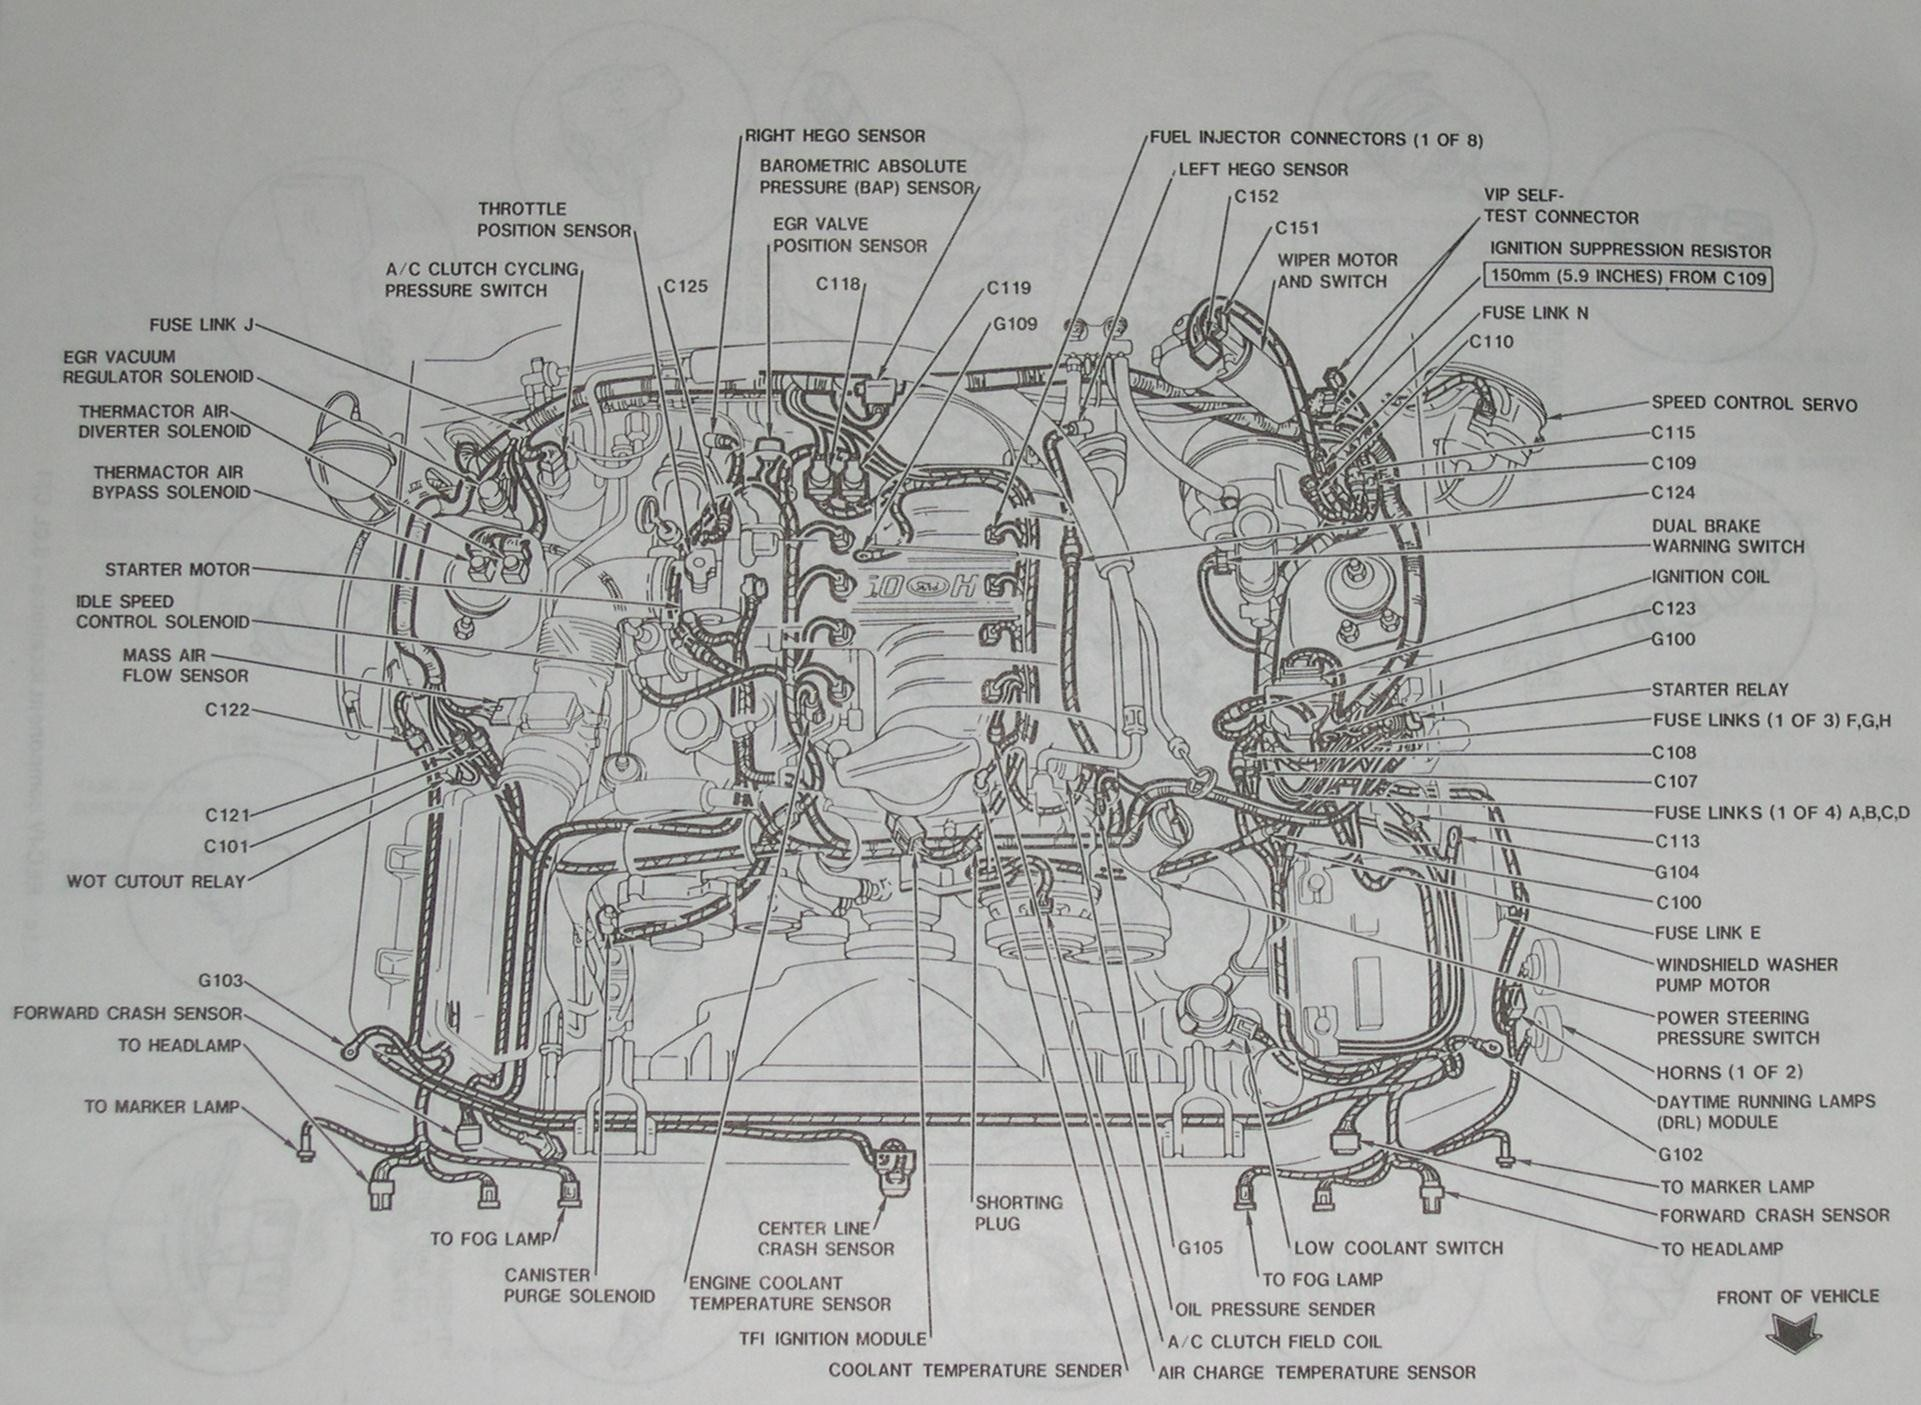 hight resolution of 2002 mustang gt engine diagram to 2007 ford mustang wiring diagram wiring diagram of 2002 mustang